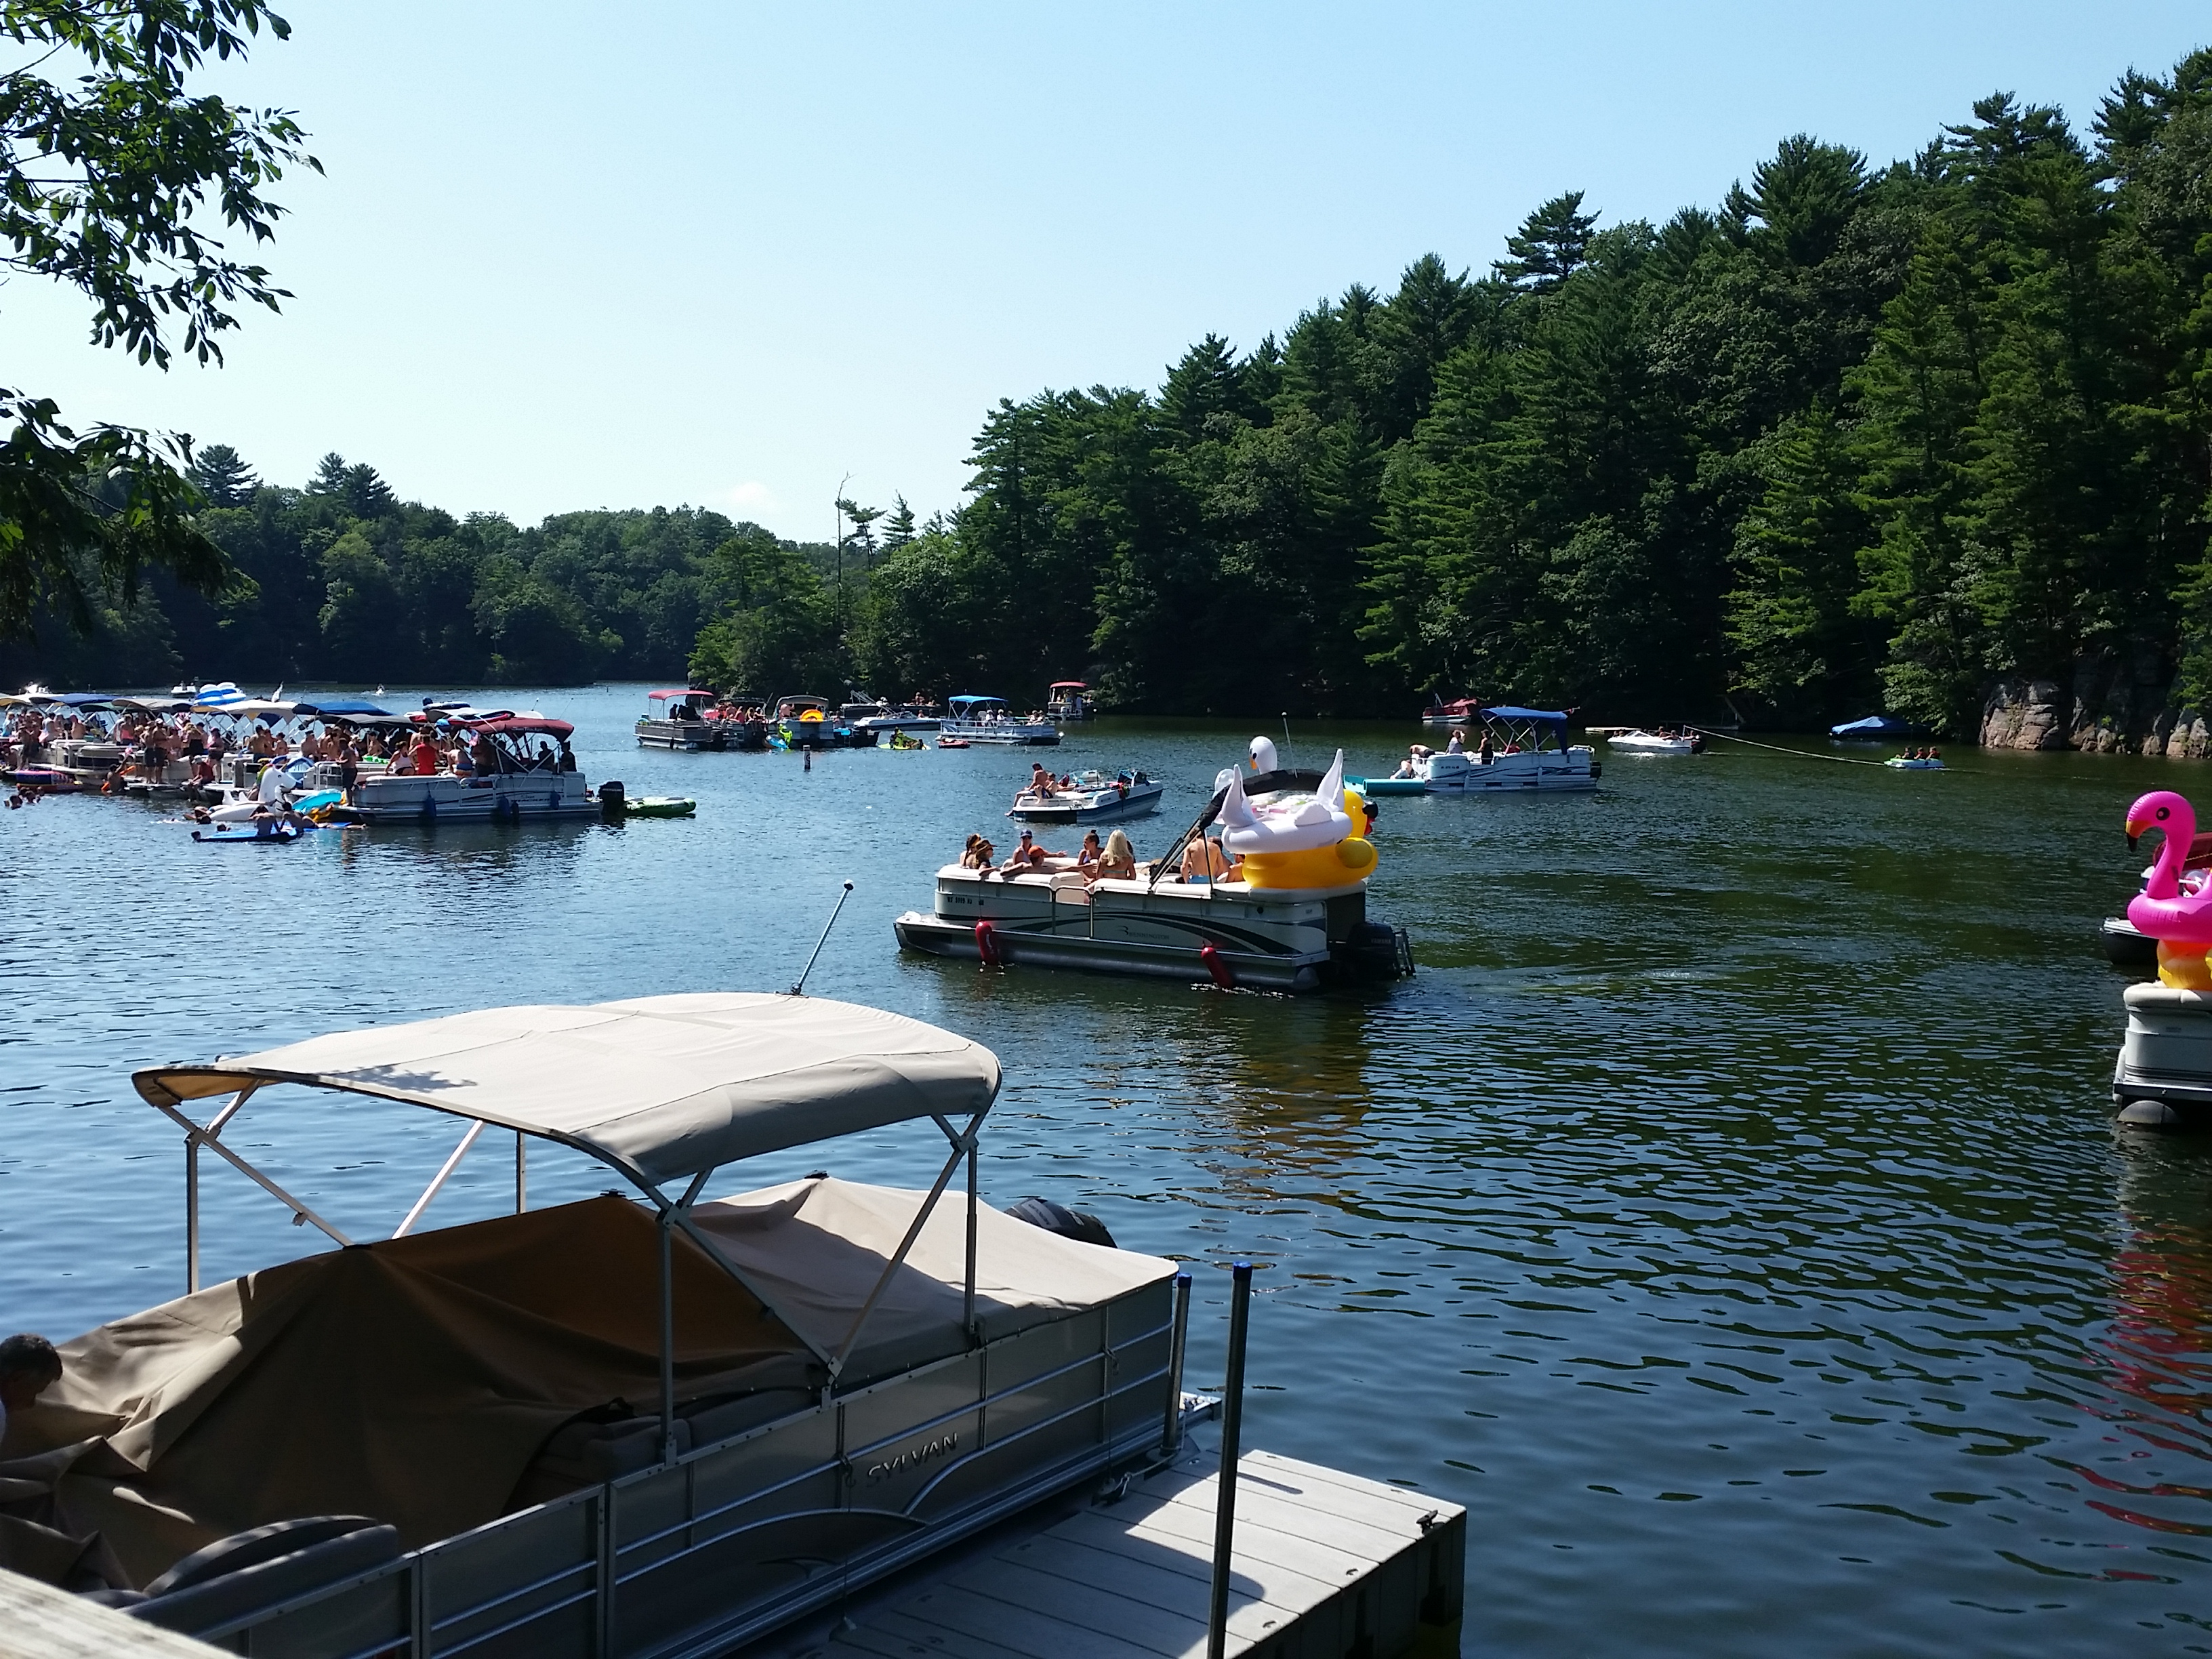 2017 Pontoon Party 07